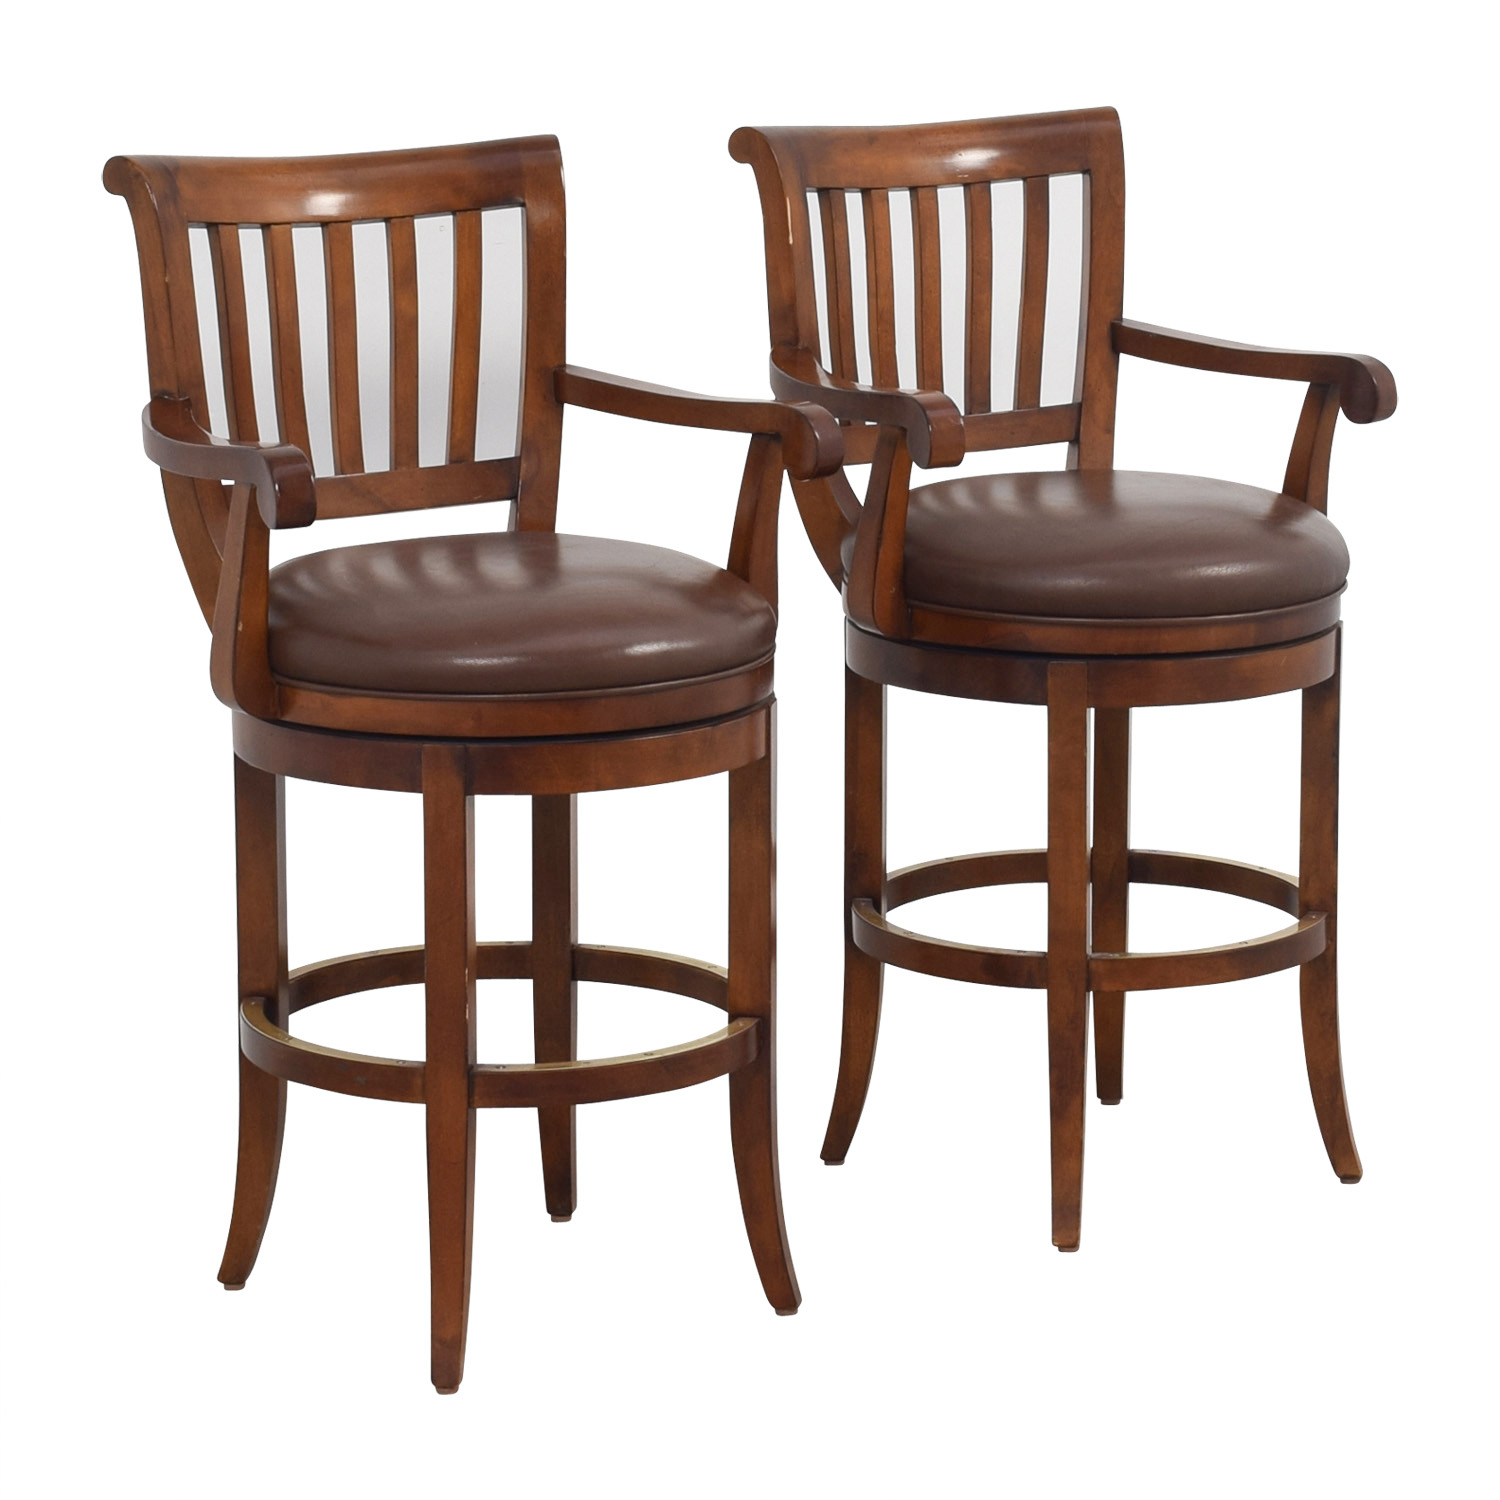 ethan allen leather chairs high on sale 79 off brown stools